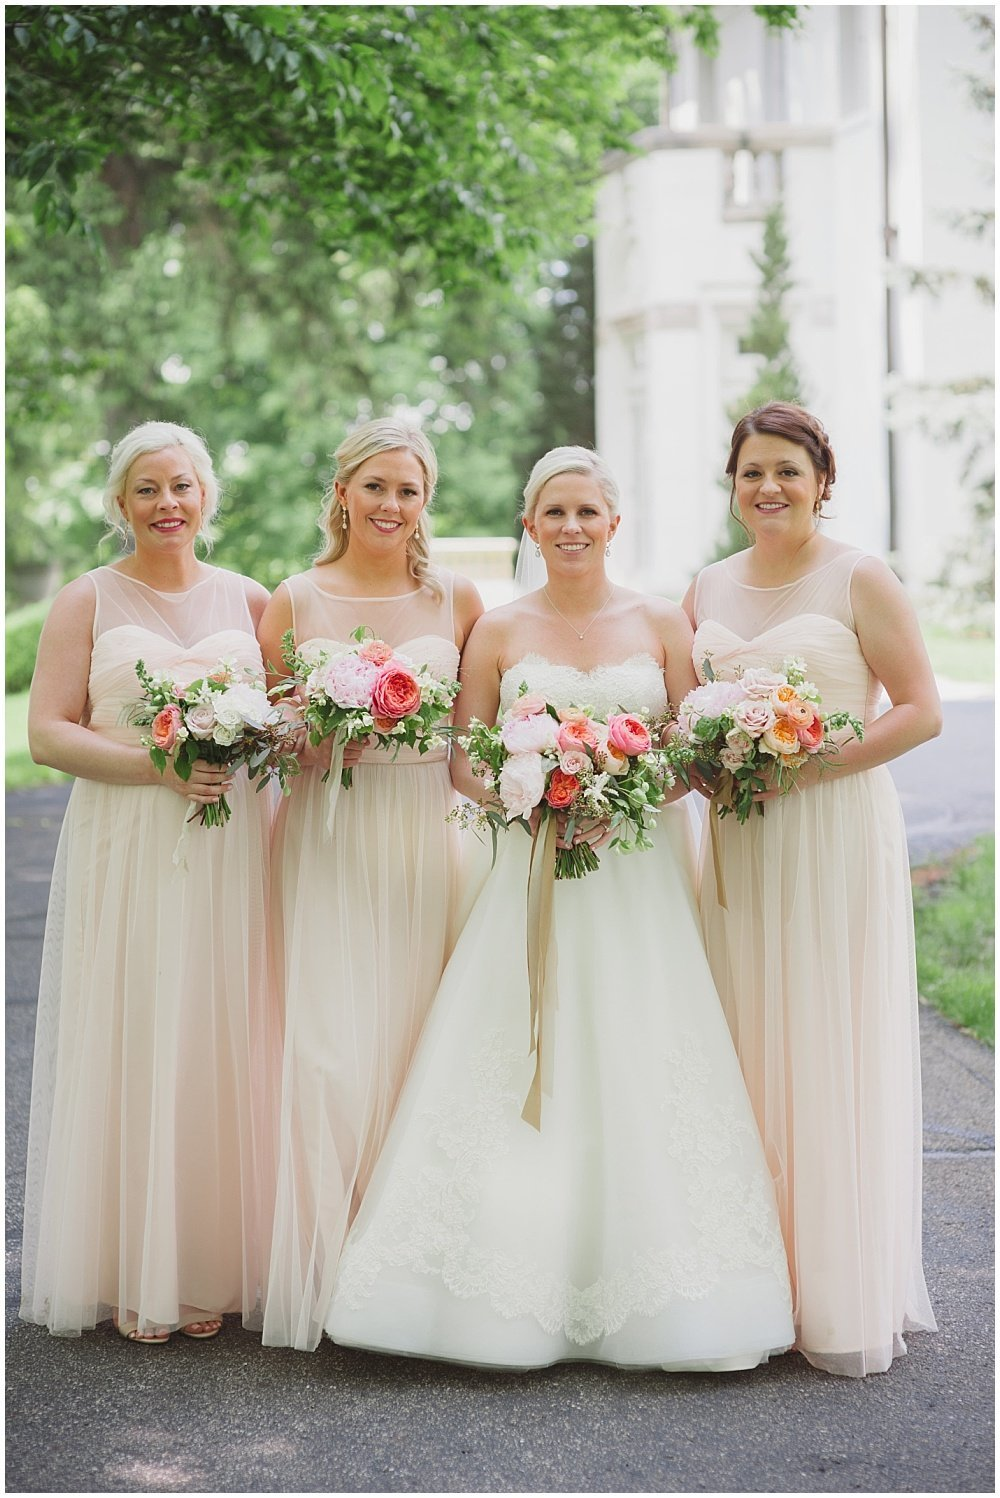 Ritz-Charles-Garden-Pavilion-Wedding-Stacy-Able-Photography-Jessica-Dum-Wedding-Coordination_photo_0015